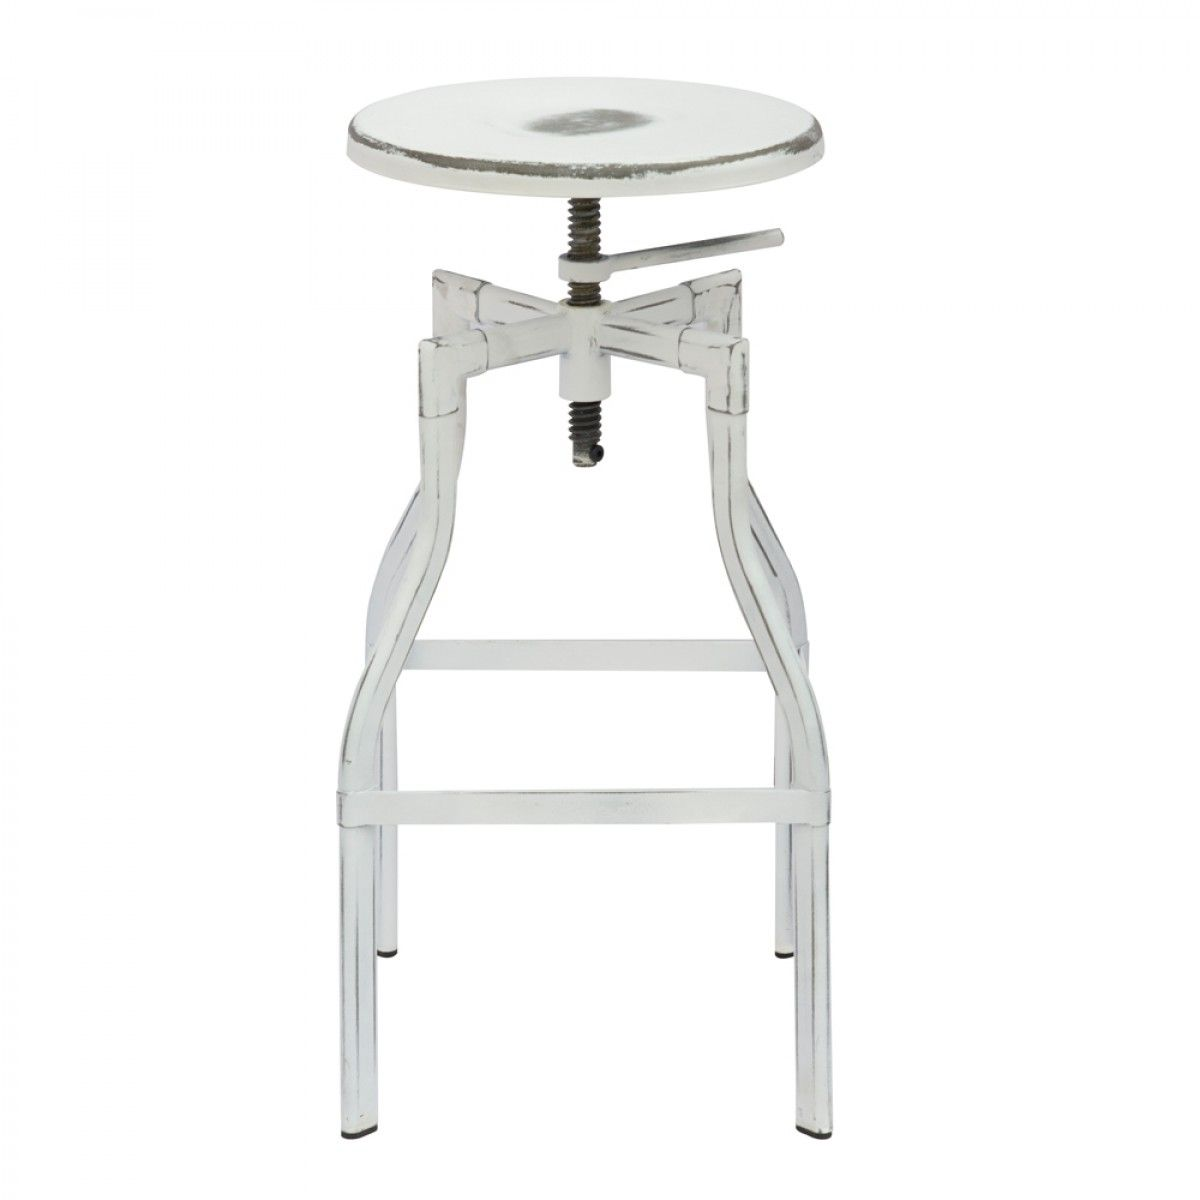 Tremendous Gaston Swivel Stool White Early Settler Recollections Gamerscity Chair Design For Home Gamerscityorg